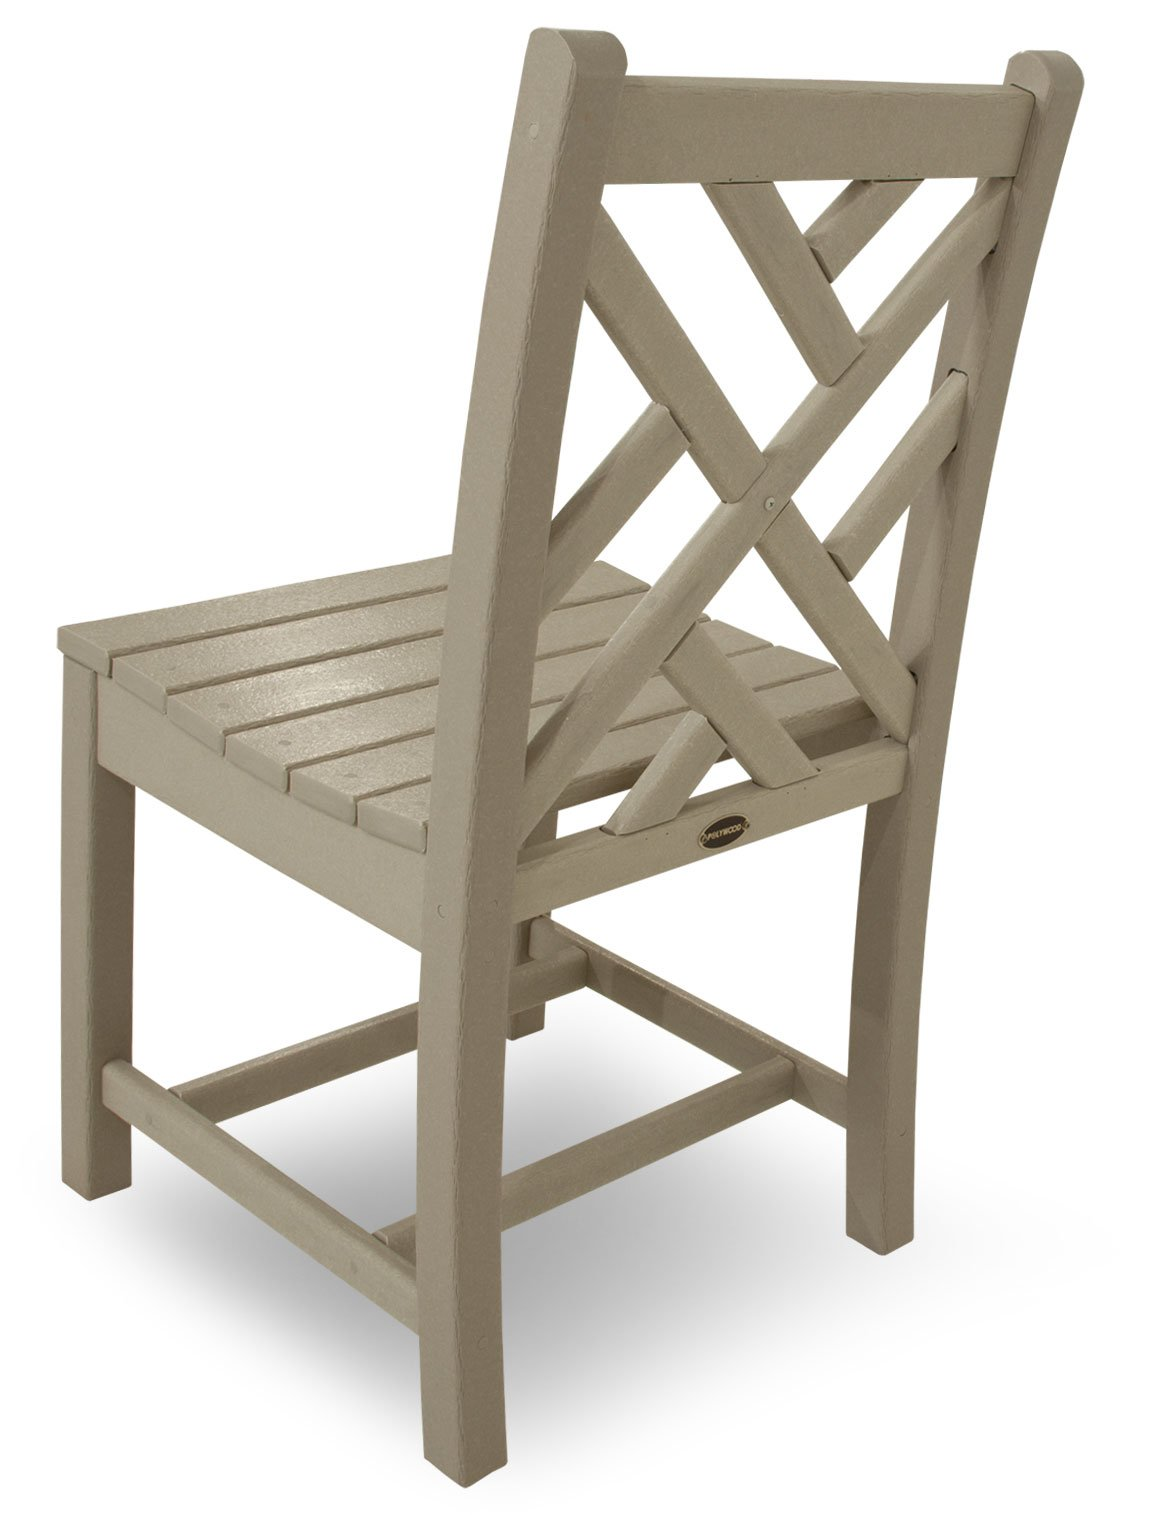 POLYWOOD CDD100SA Chippendale Dining Side Chair, Sand - Pair this elegant Chippendale dining side chair with one of the POLYWOOD traditional dining table;  is made with fade-resistant POLYWOOD recycled lumber POLYWOOD recycled HDPE lumber has the look of painted wood without the upkeep real wood requires; requires no painting, staining, or waterproofing Heavy-duty construction withstands nature's elements; will not splinter, crack, chip, peel or rot and is resistant to stains, insects, fungi, and salt spray - patio-furniture, patio-chairs, patio - 61xsumLxycL -